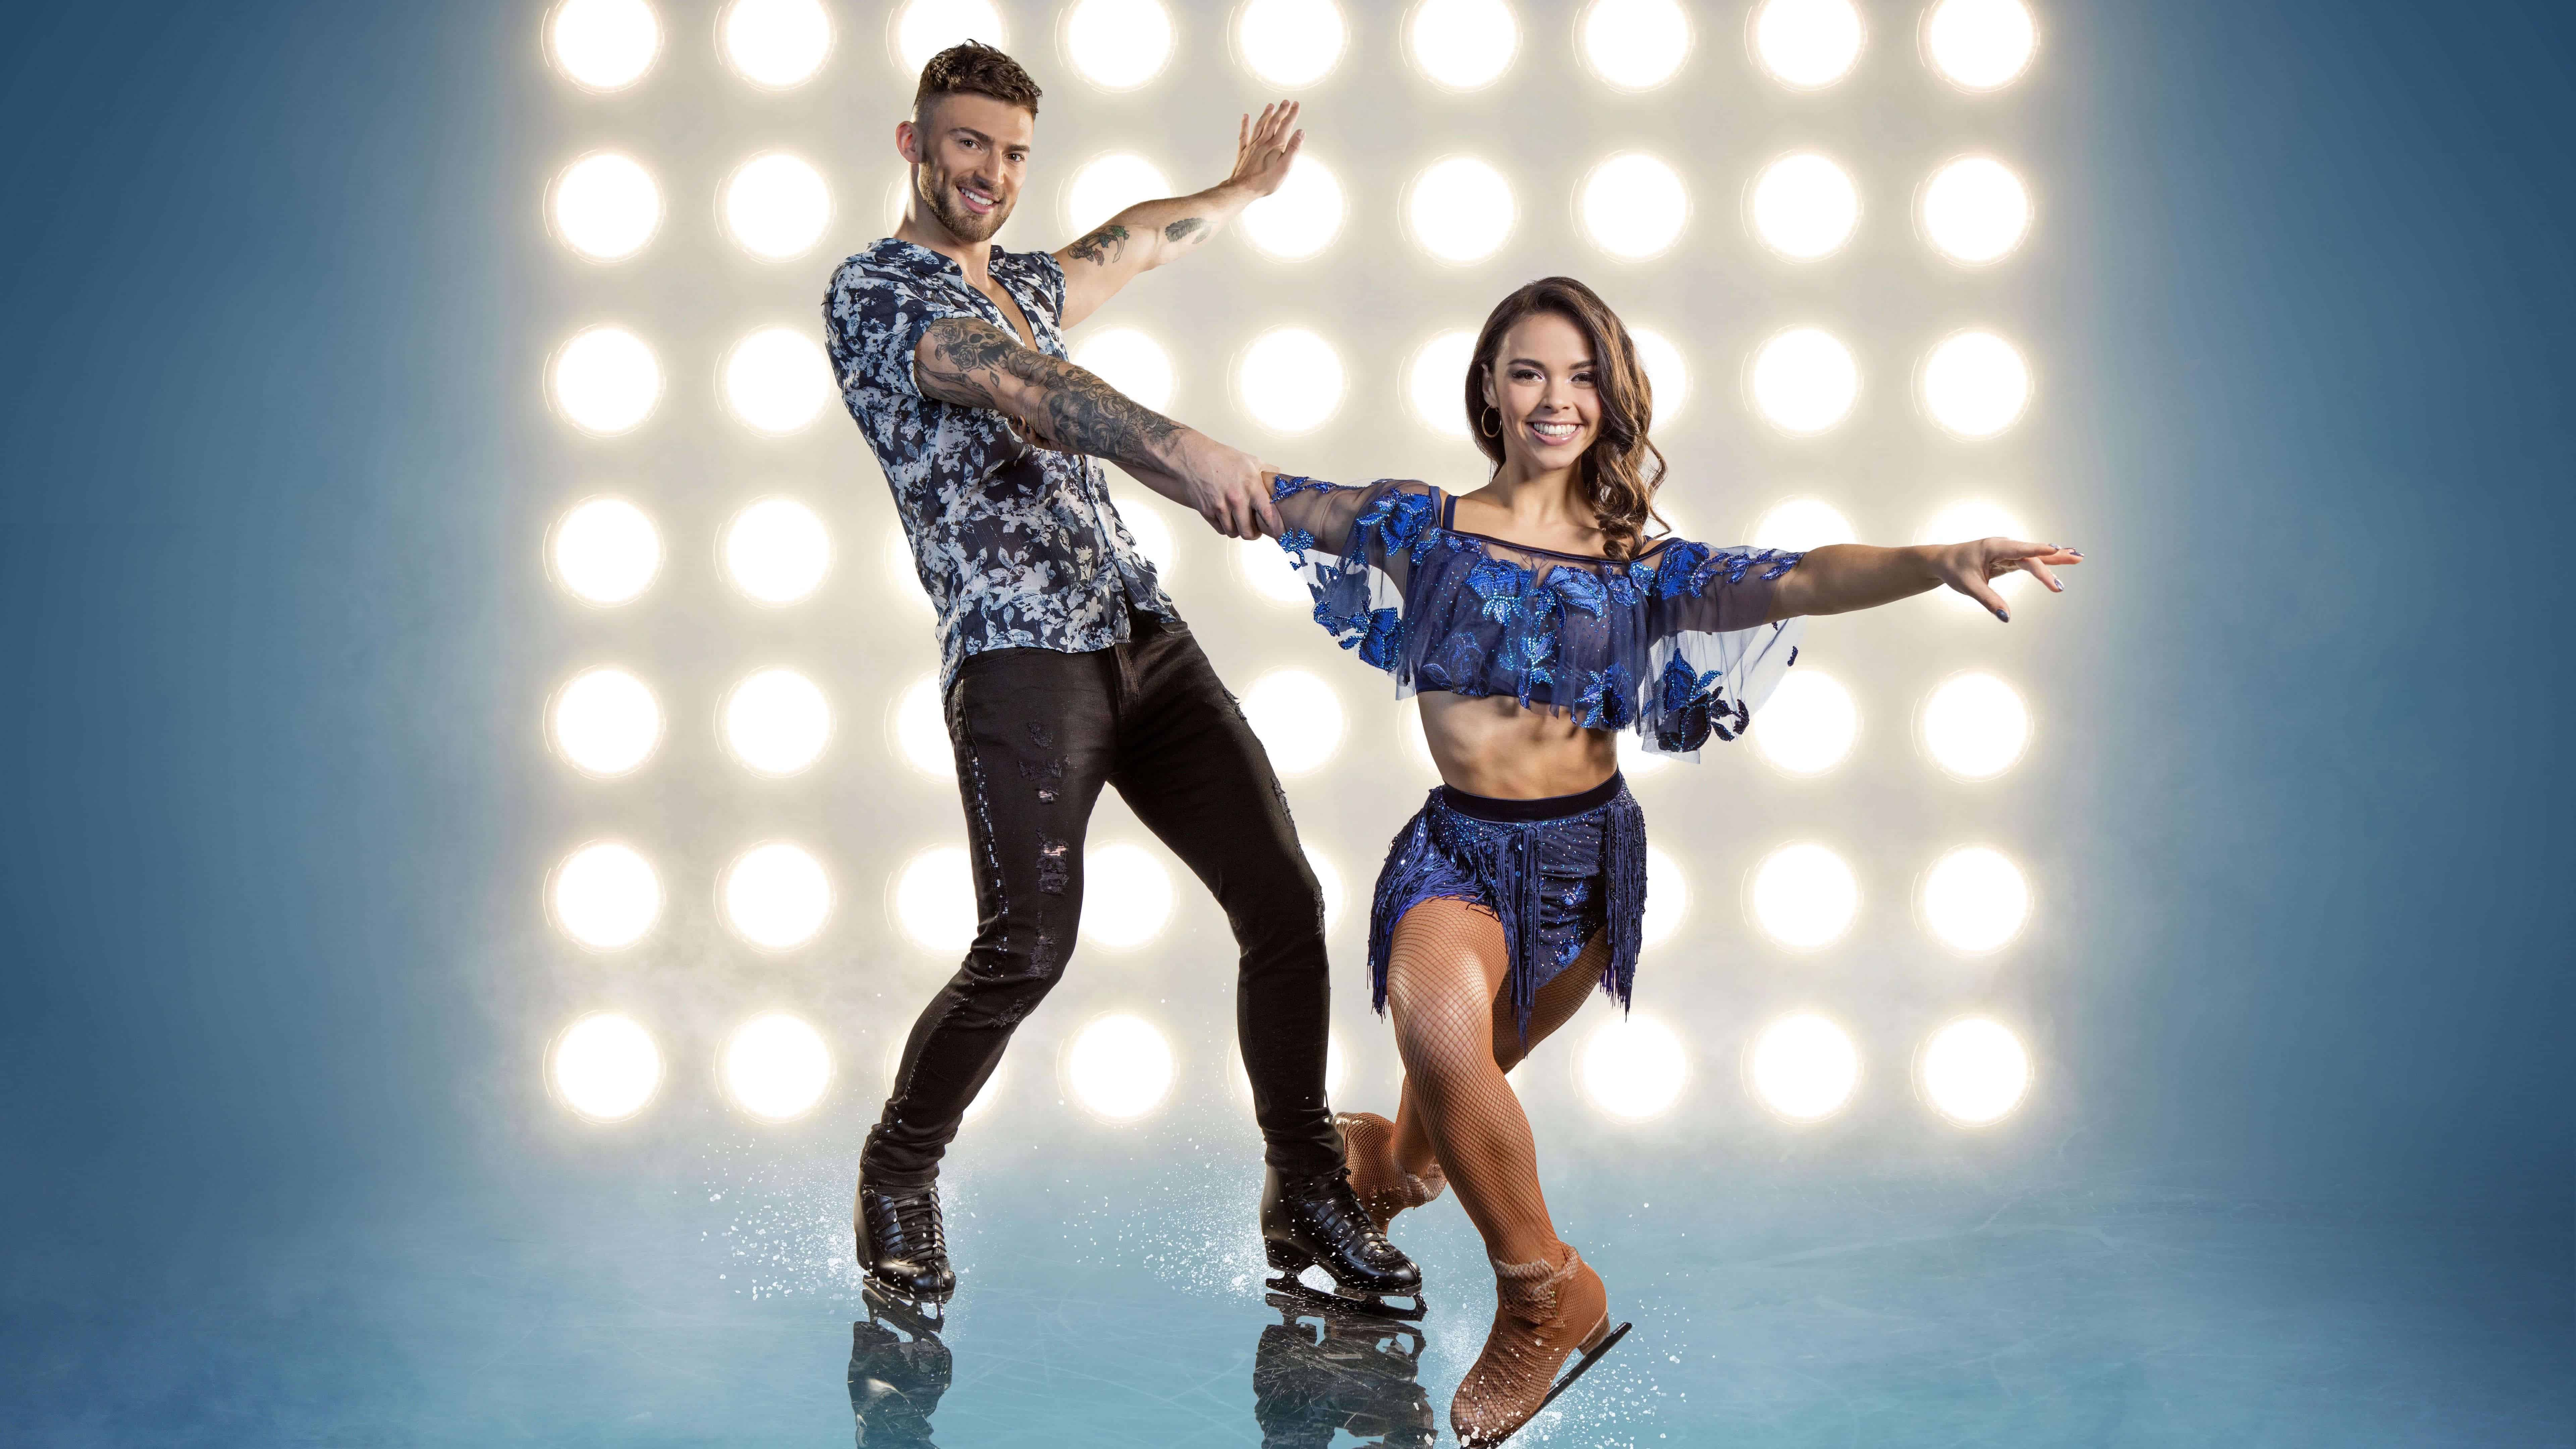 Dancing On Ice Jake Quickenden UHD 8k Wallpapers